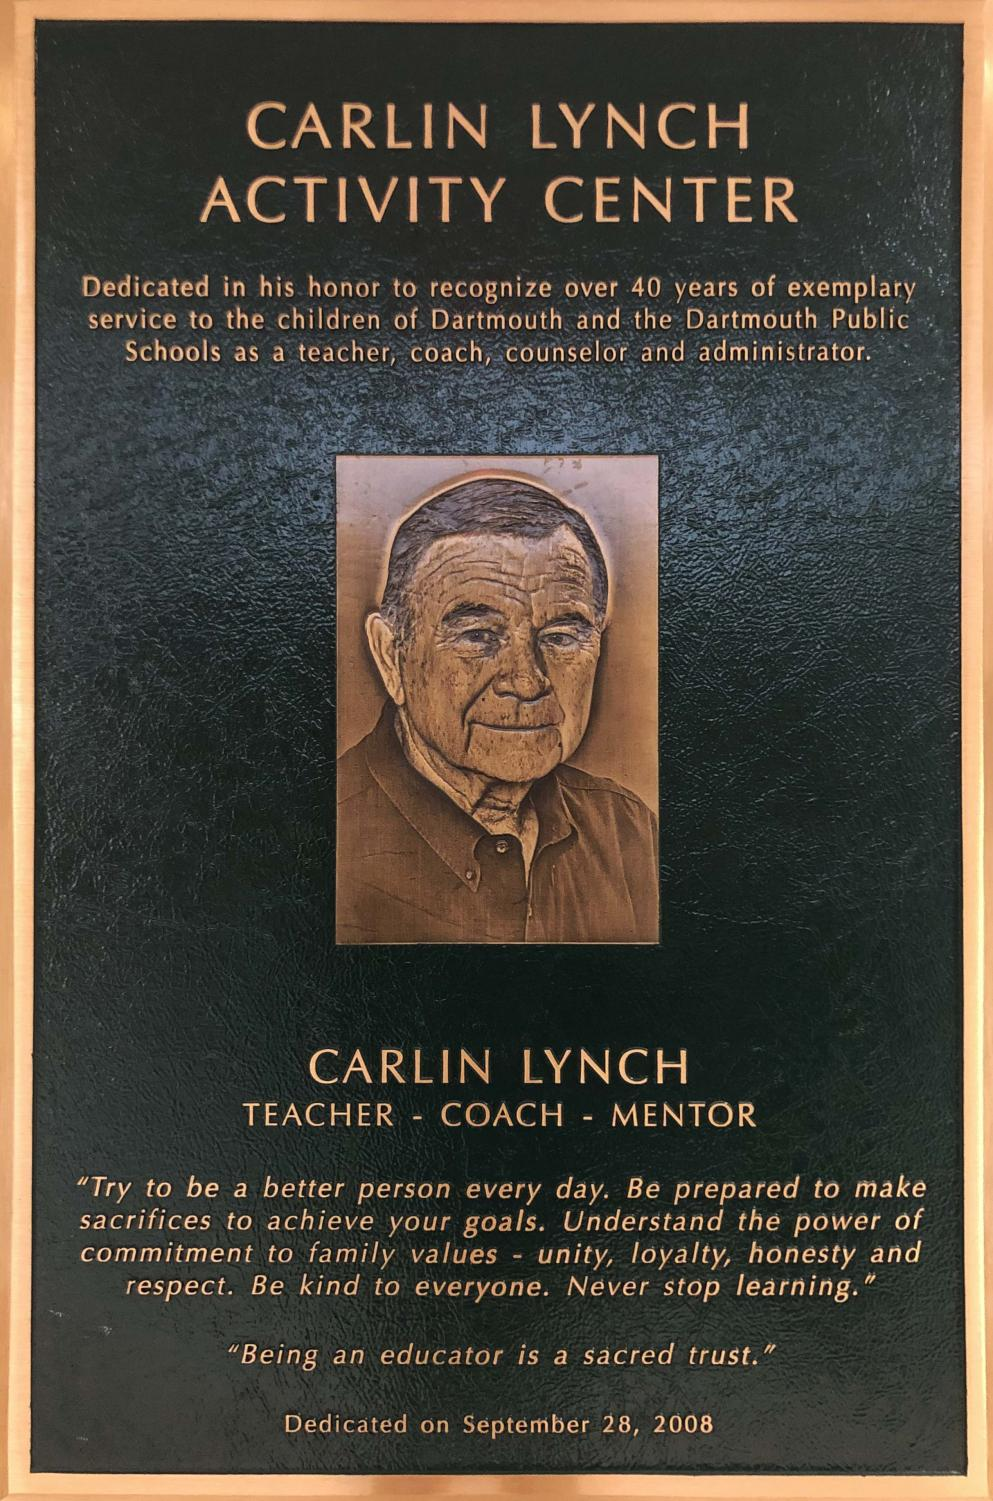 The plaque dedicating the DHS Athletic Center in Carlin Lynch's name.